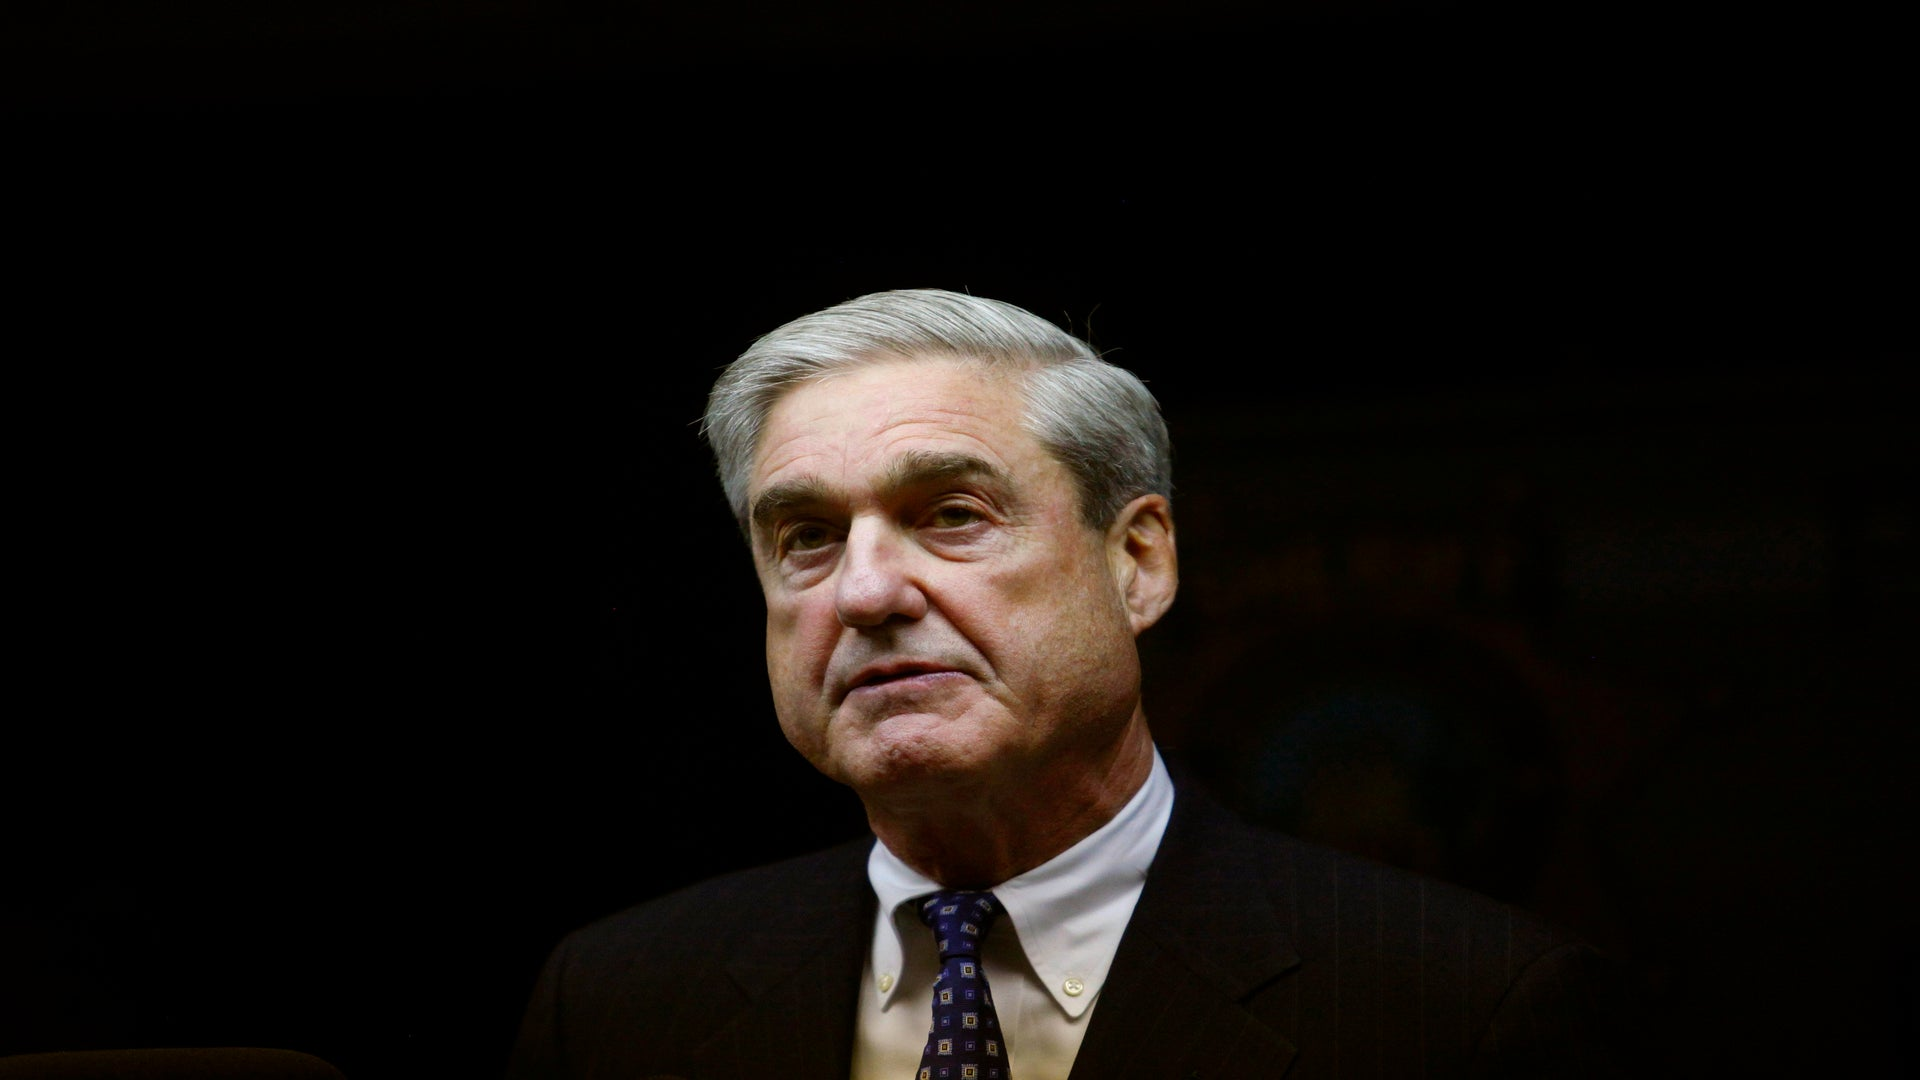 The Quick Read: First Charges Filed In Mueller's Russia Investigation